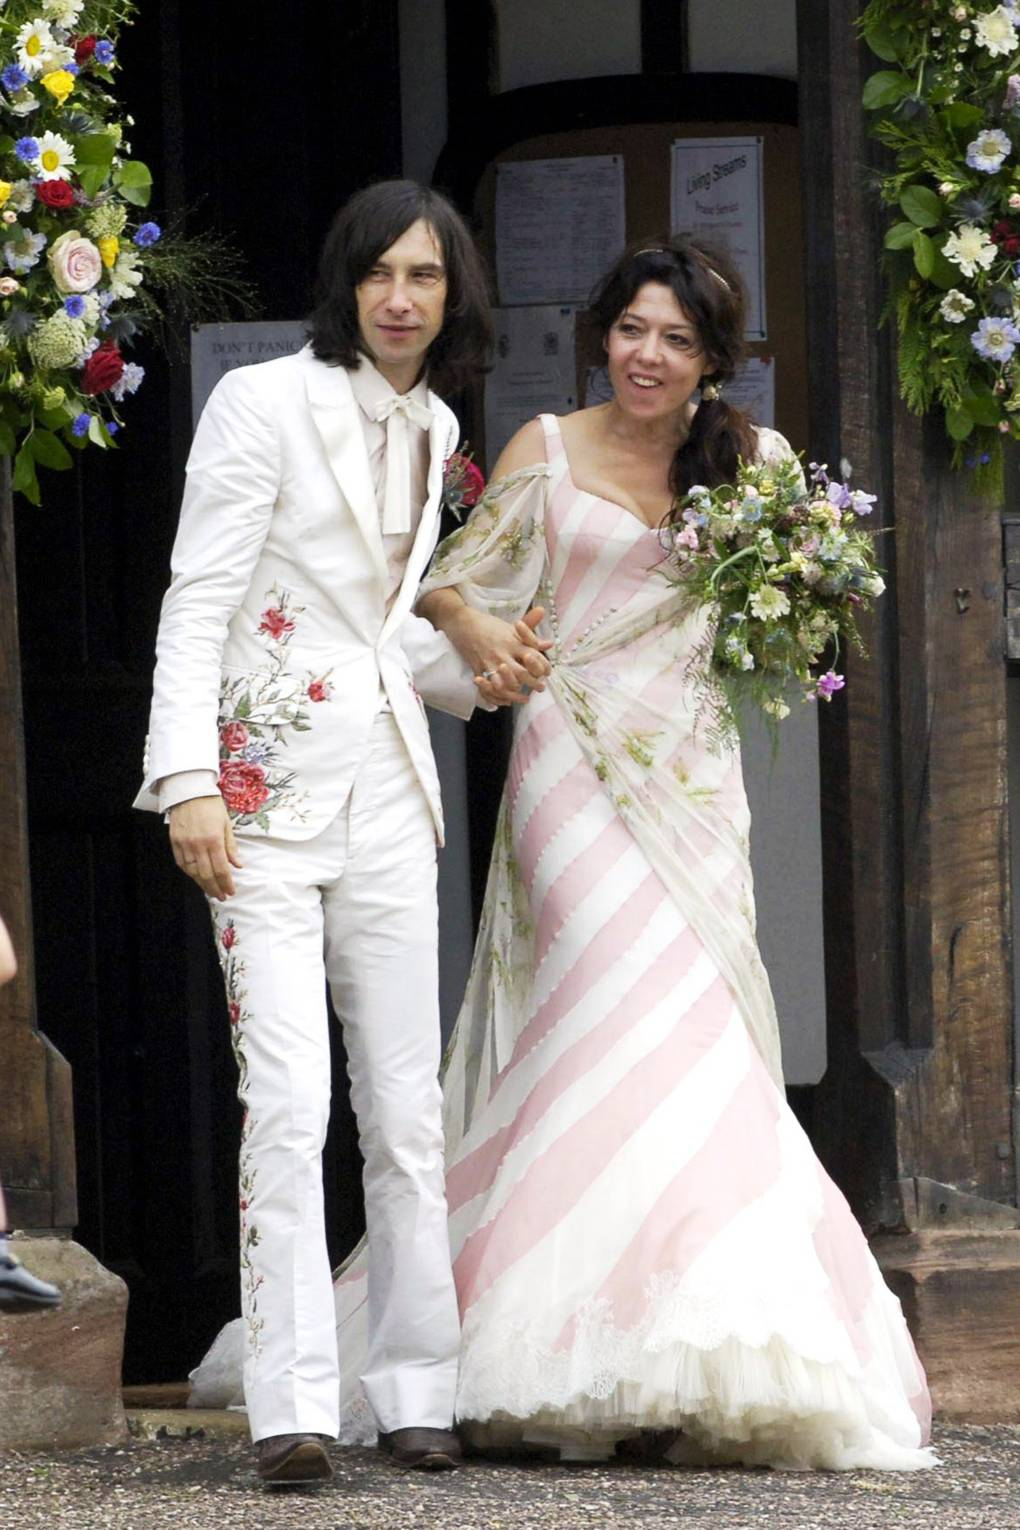 Colourful Wedding Dresses - Celebrity Brides And Bridal Gowns ...